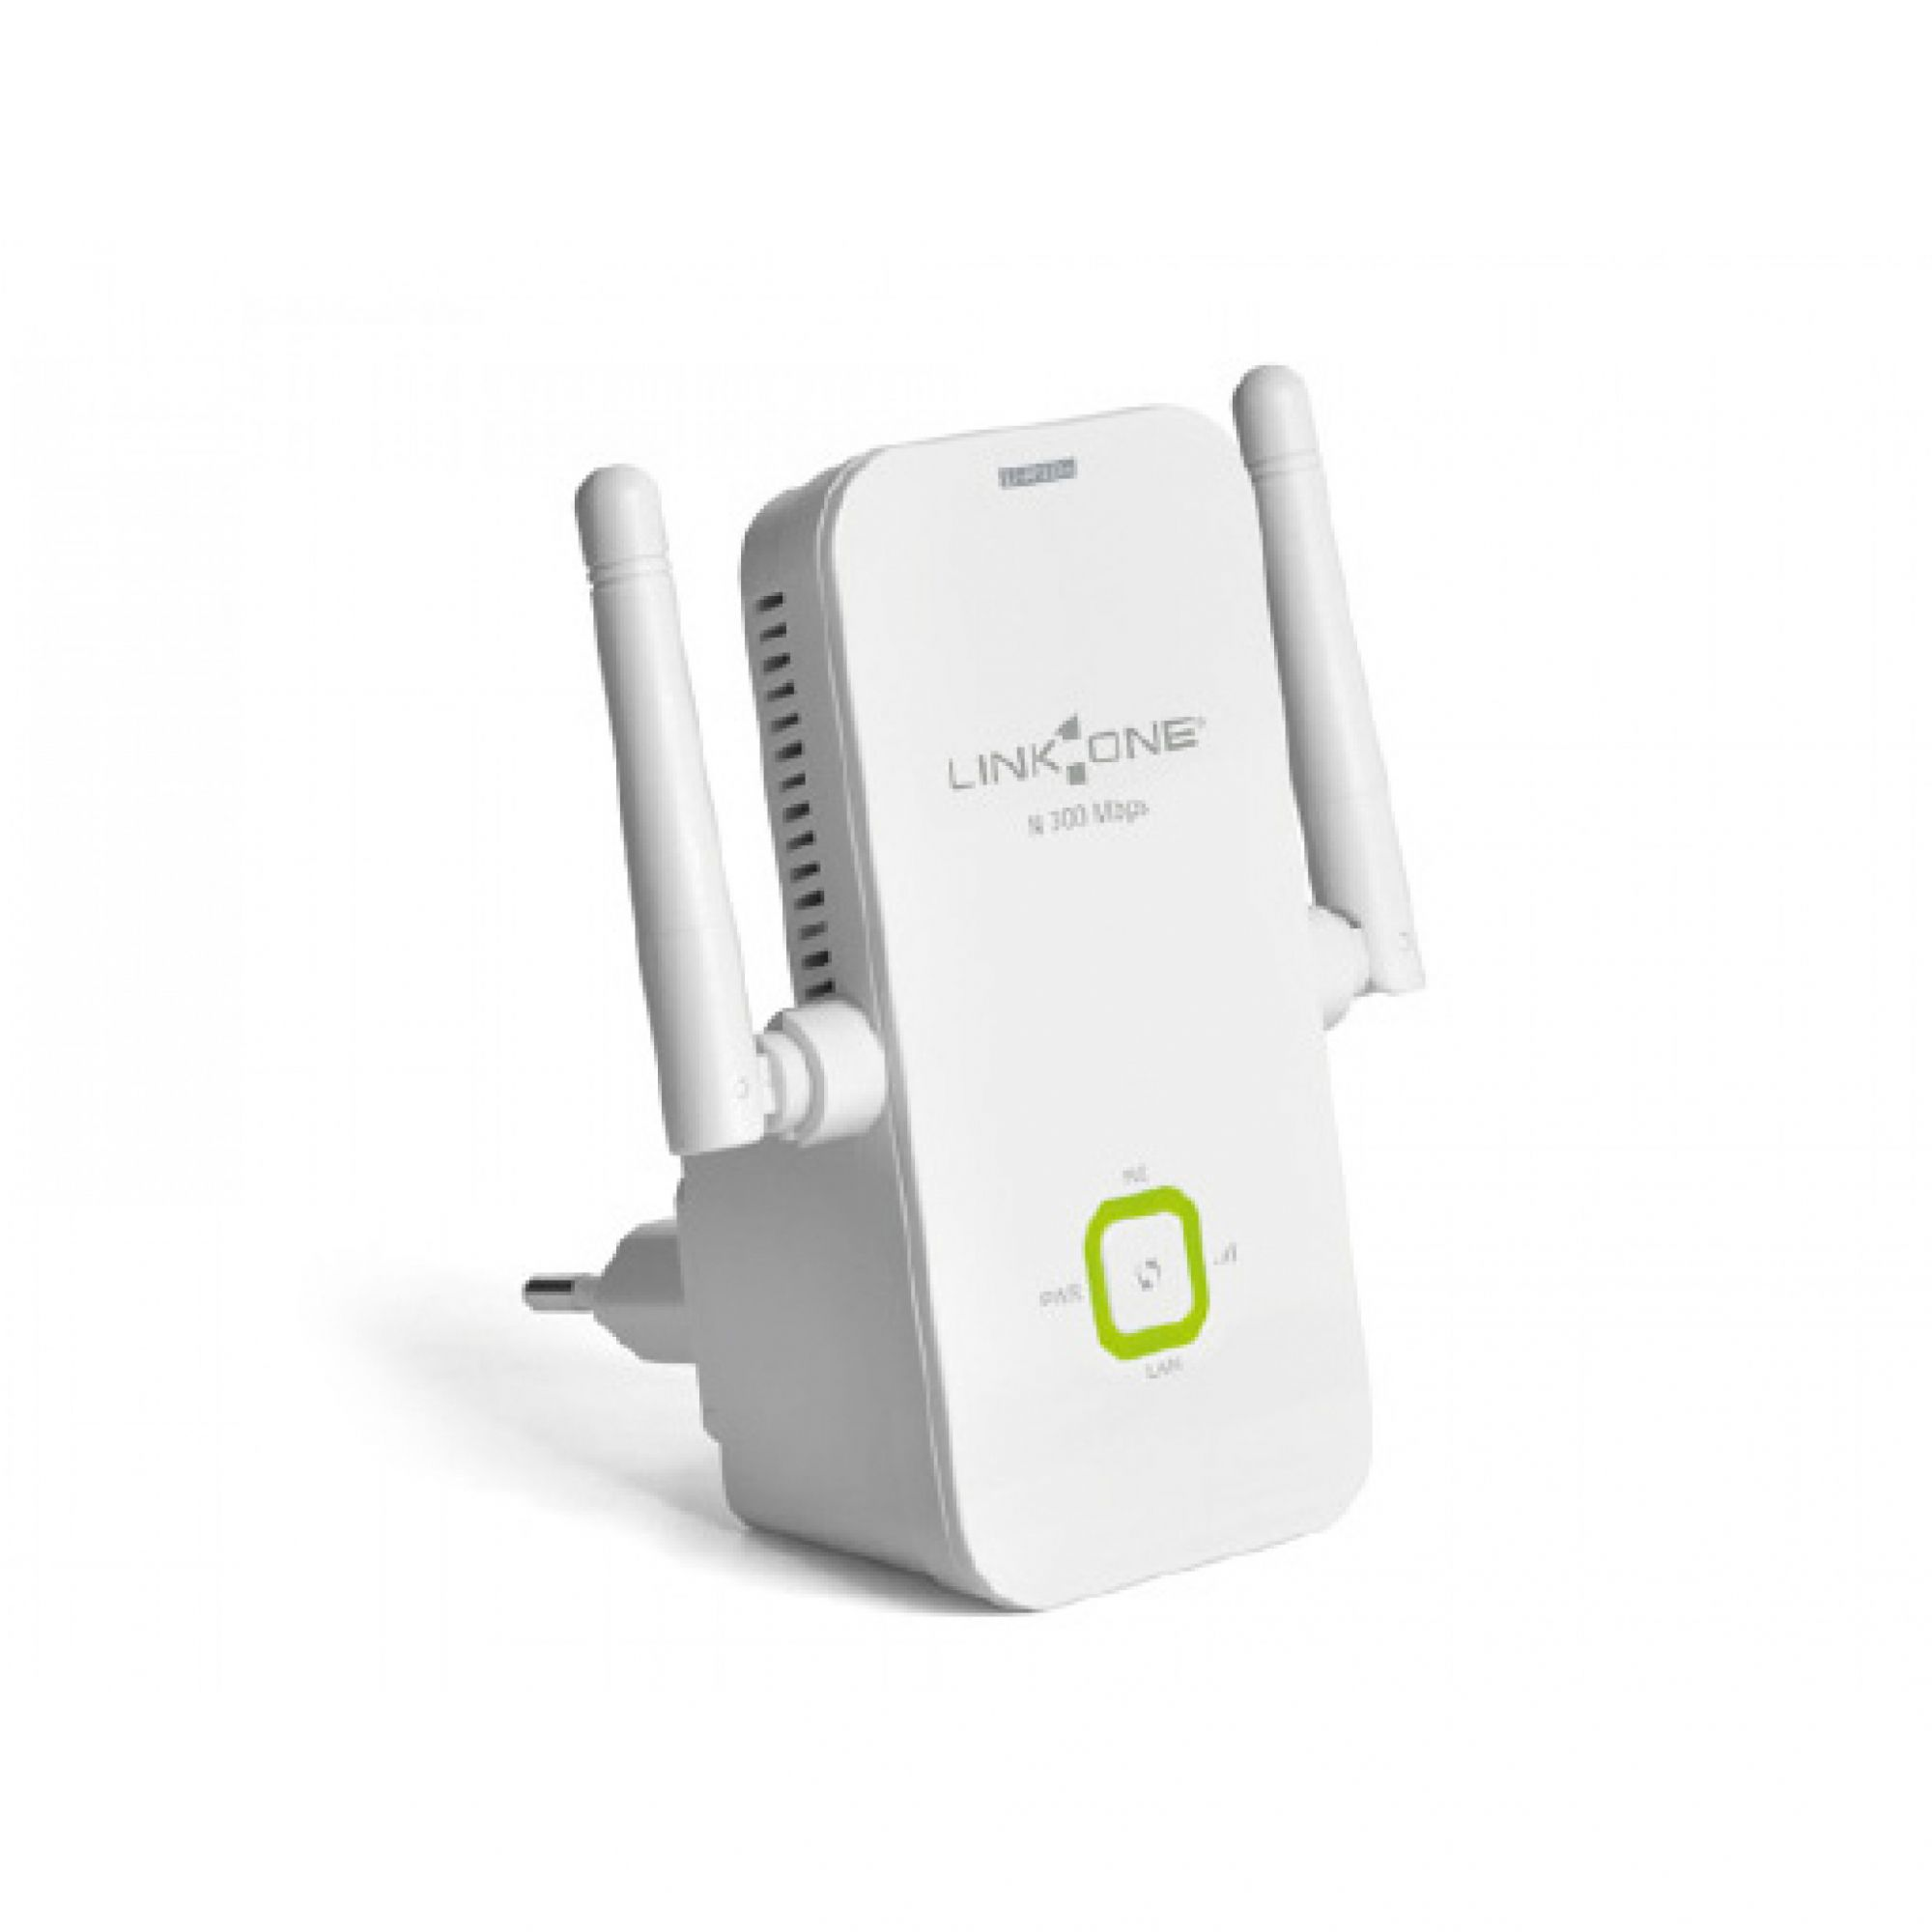 Repetidor Expansor de Sinal Link 1 One 300Mbps L1-AP312N Wireless